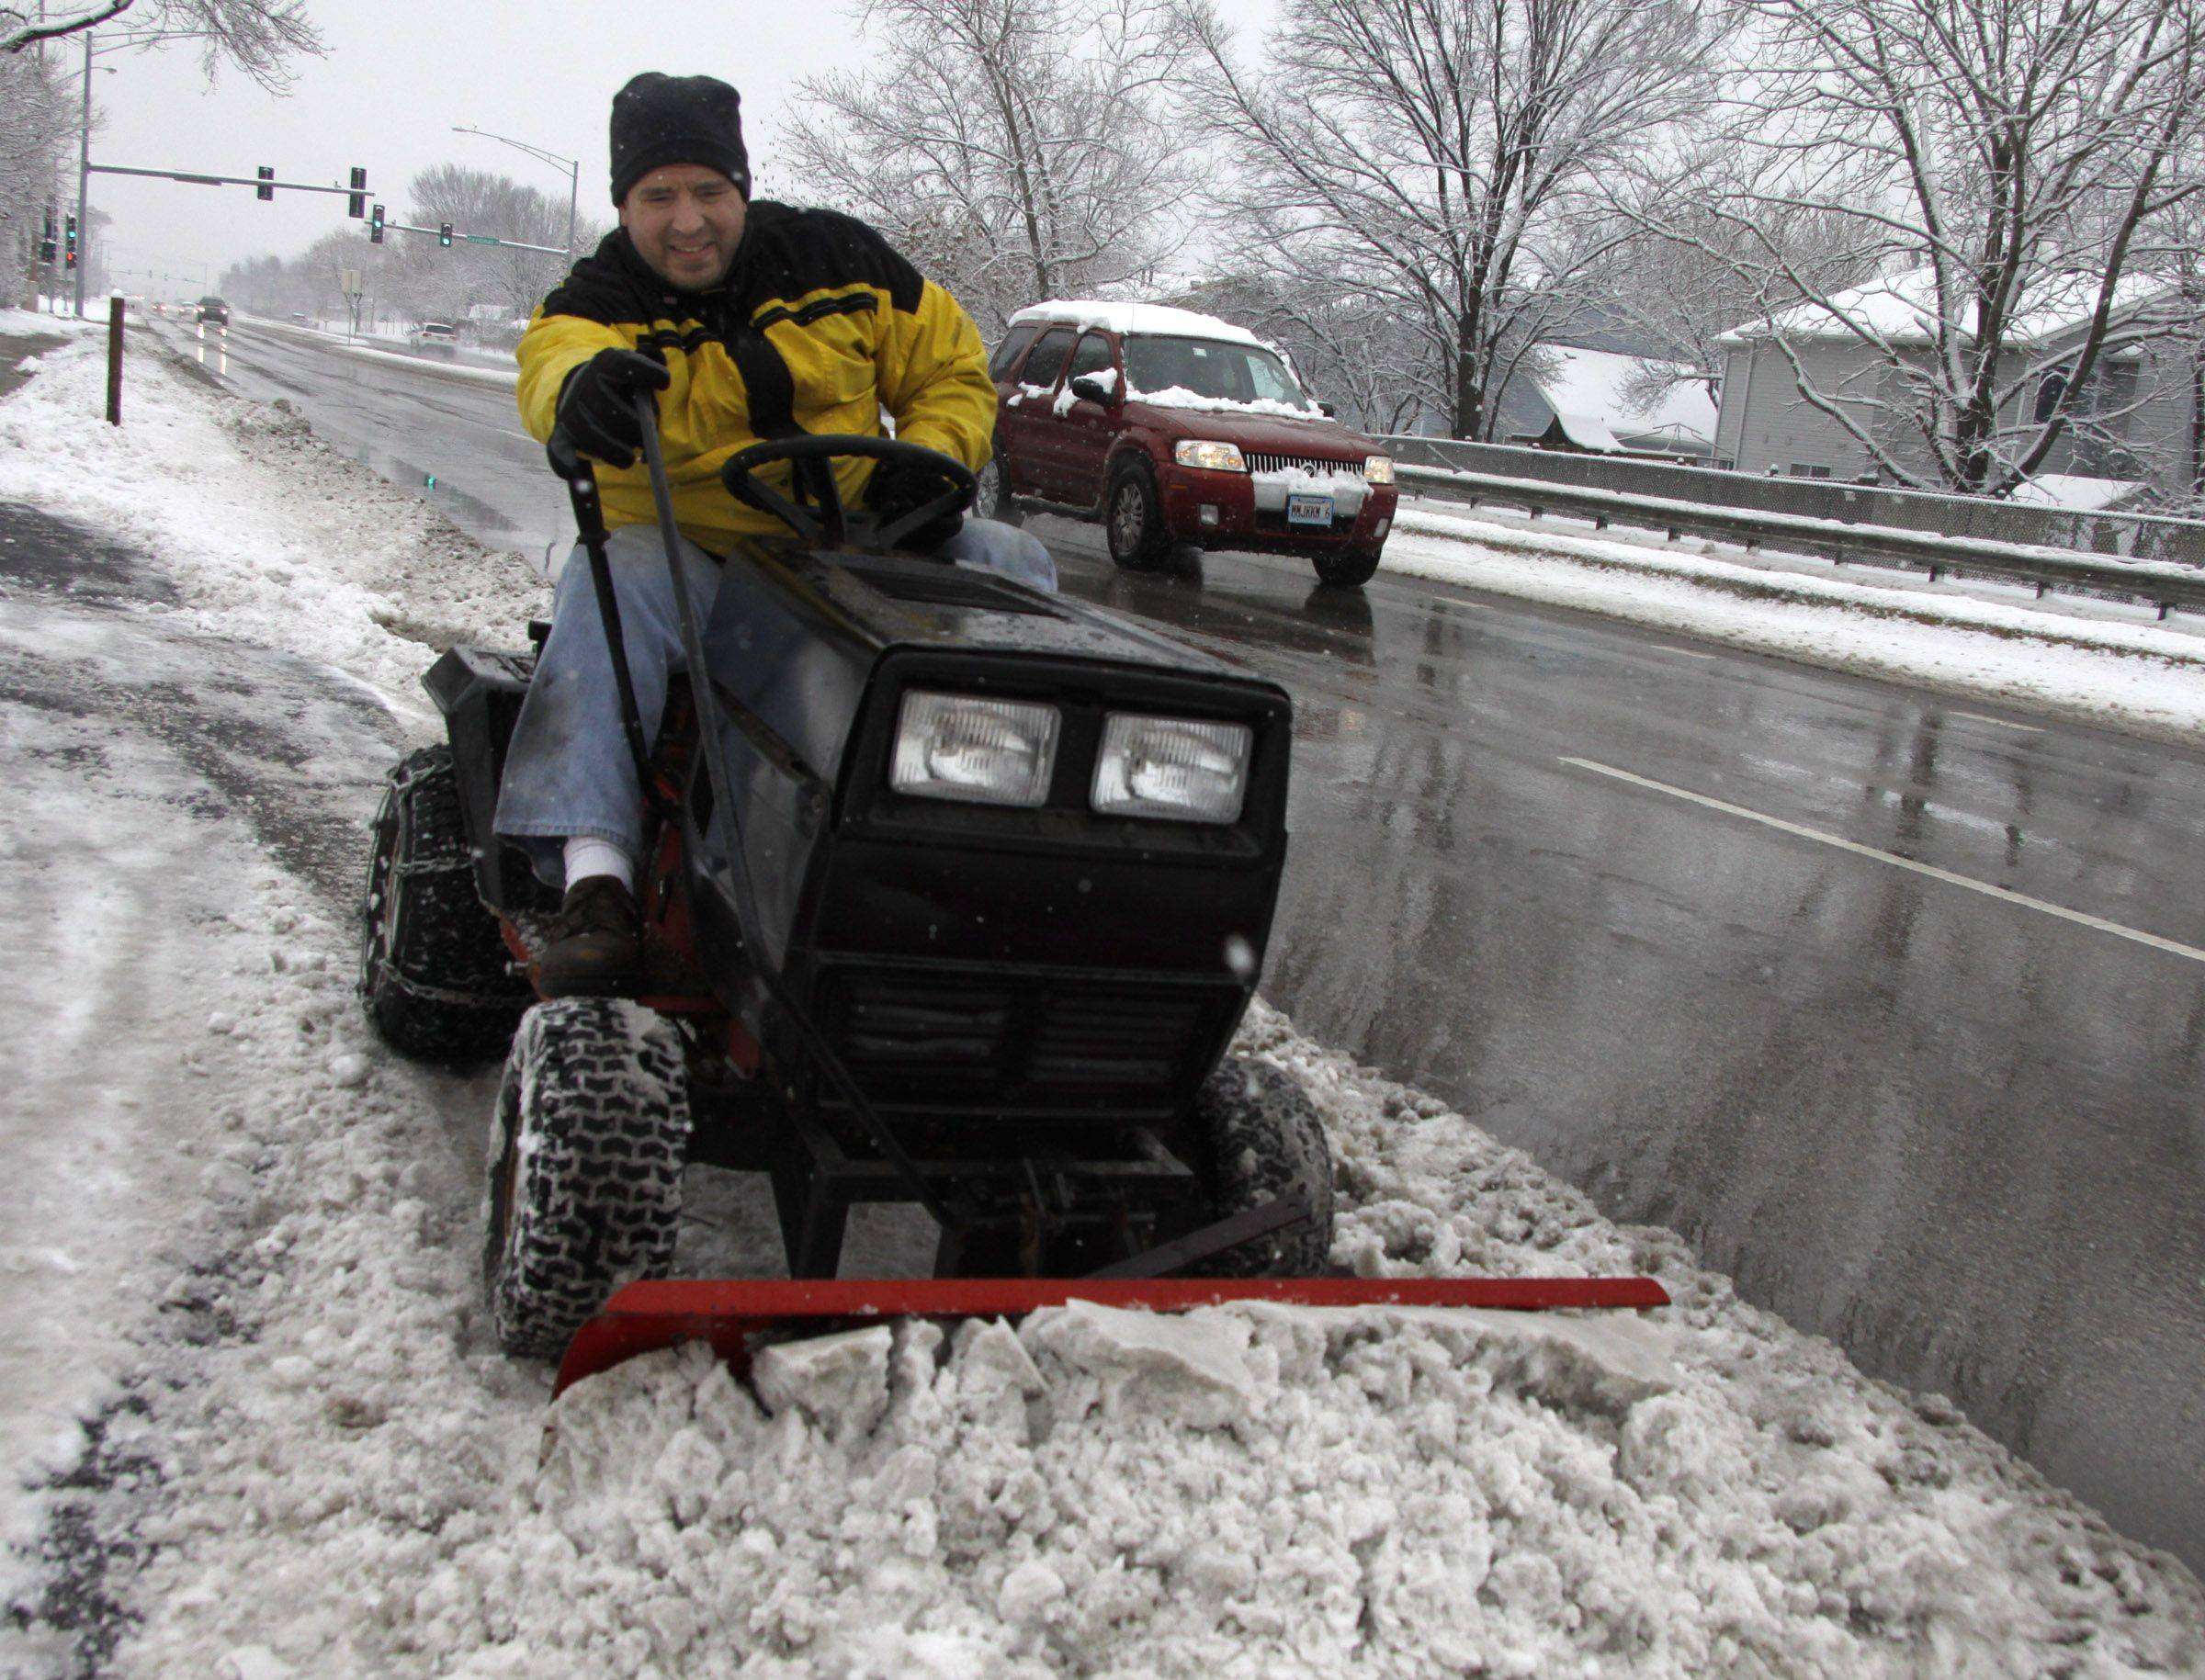 """I do my two neighbors driveways and I plow the sidewalk from Meddowlark to Cardninal every year,"" said Matt West of Glendale Heights ""Our little neighborhood is these three houses on Army Trail, we take care of each other."" The first snowstorm of the season hit Saturday morning."